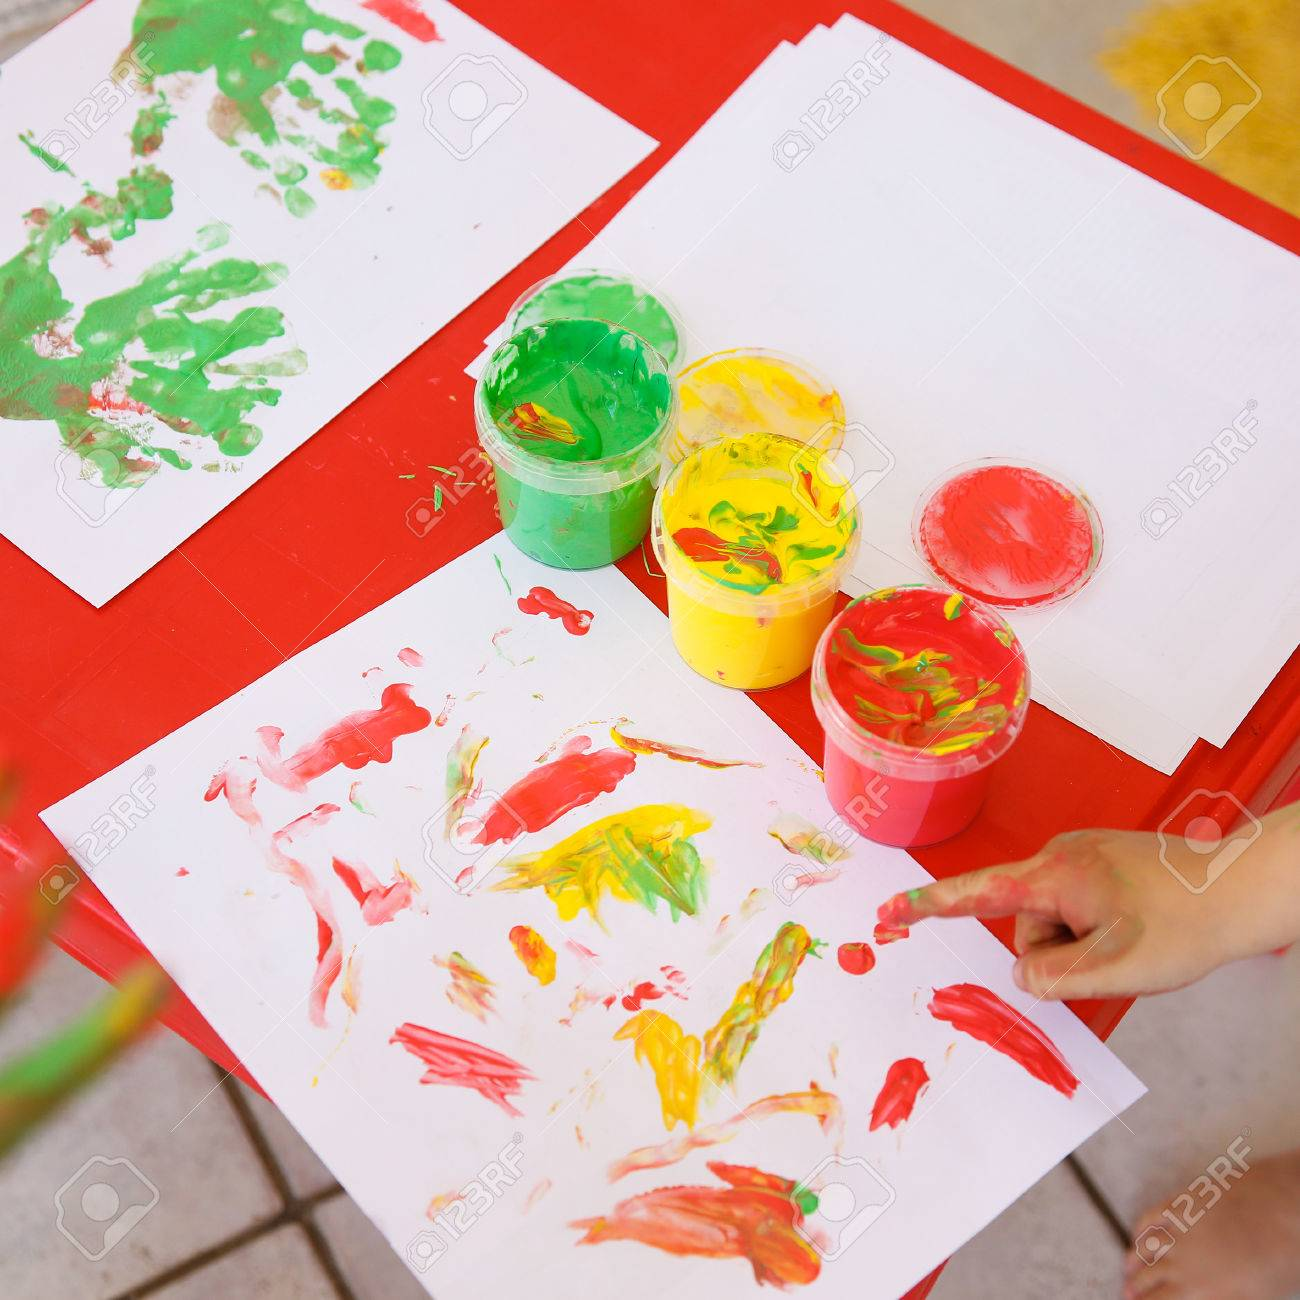 1300x1300 Child Painting A Drawing With Finger Paints, Used For Finger